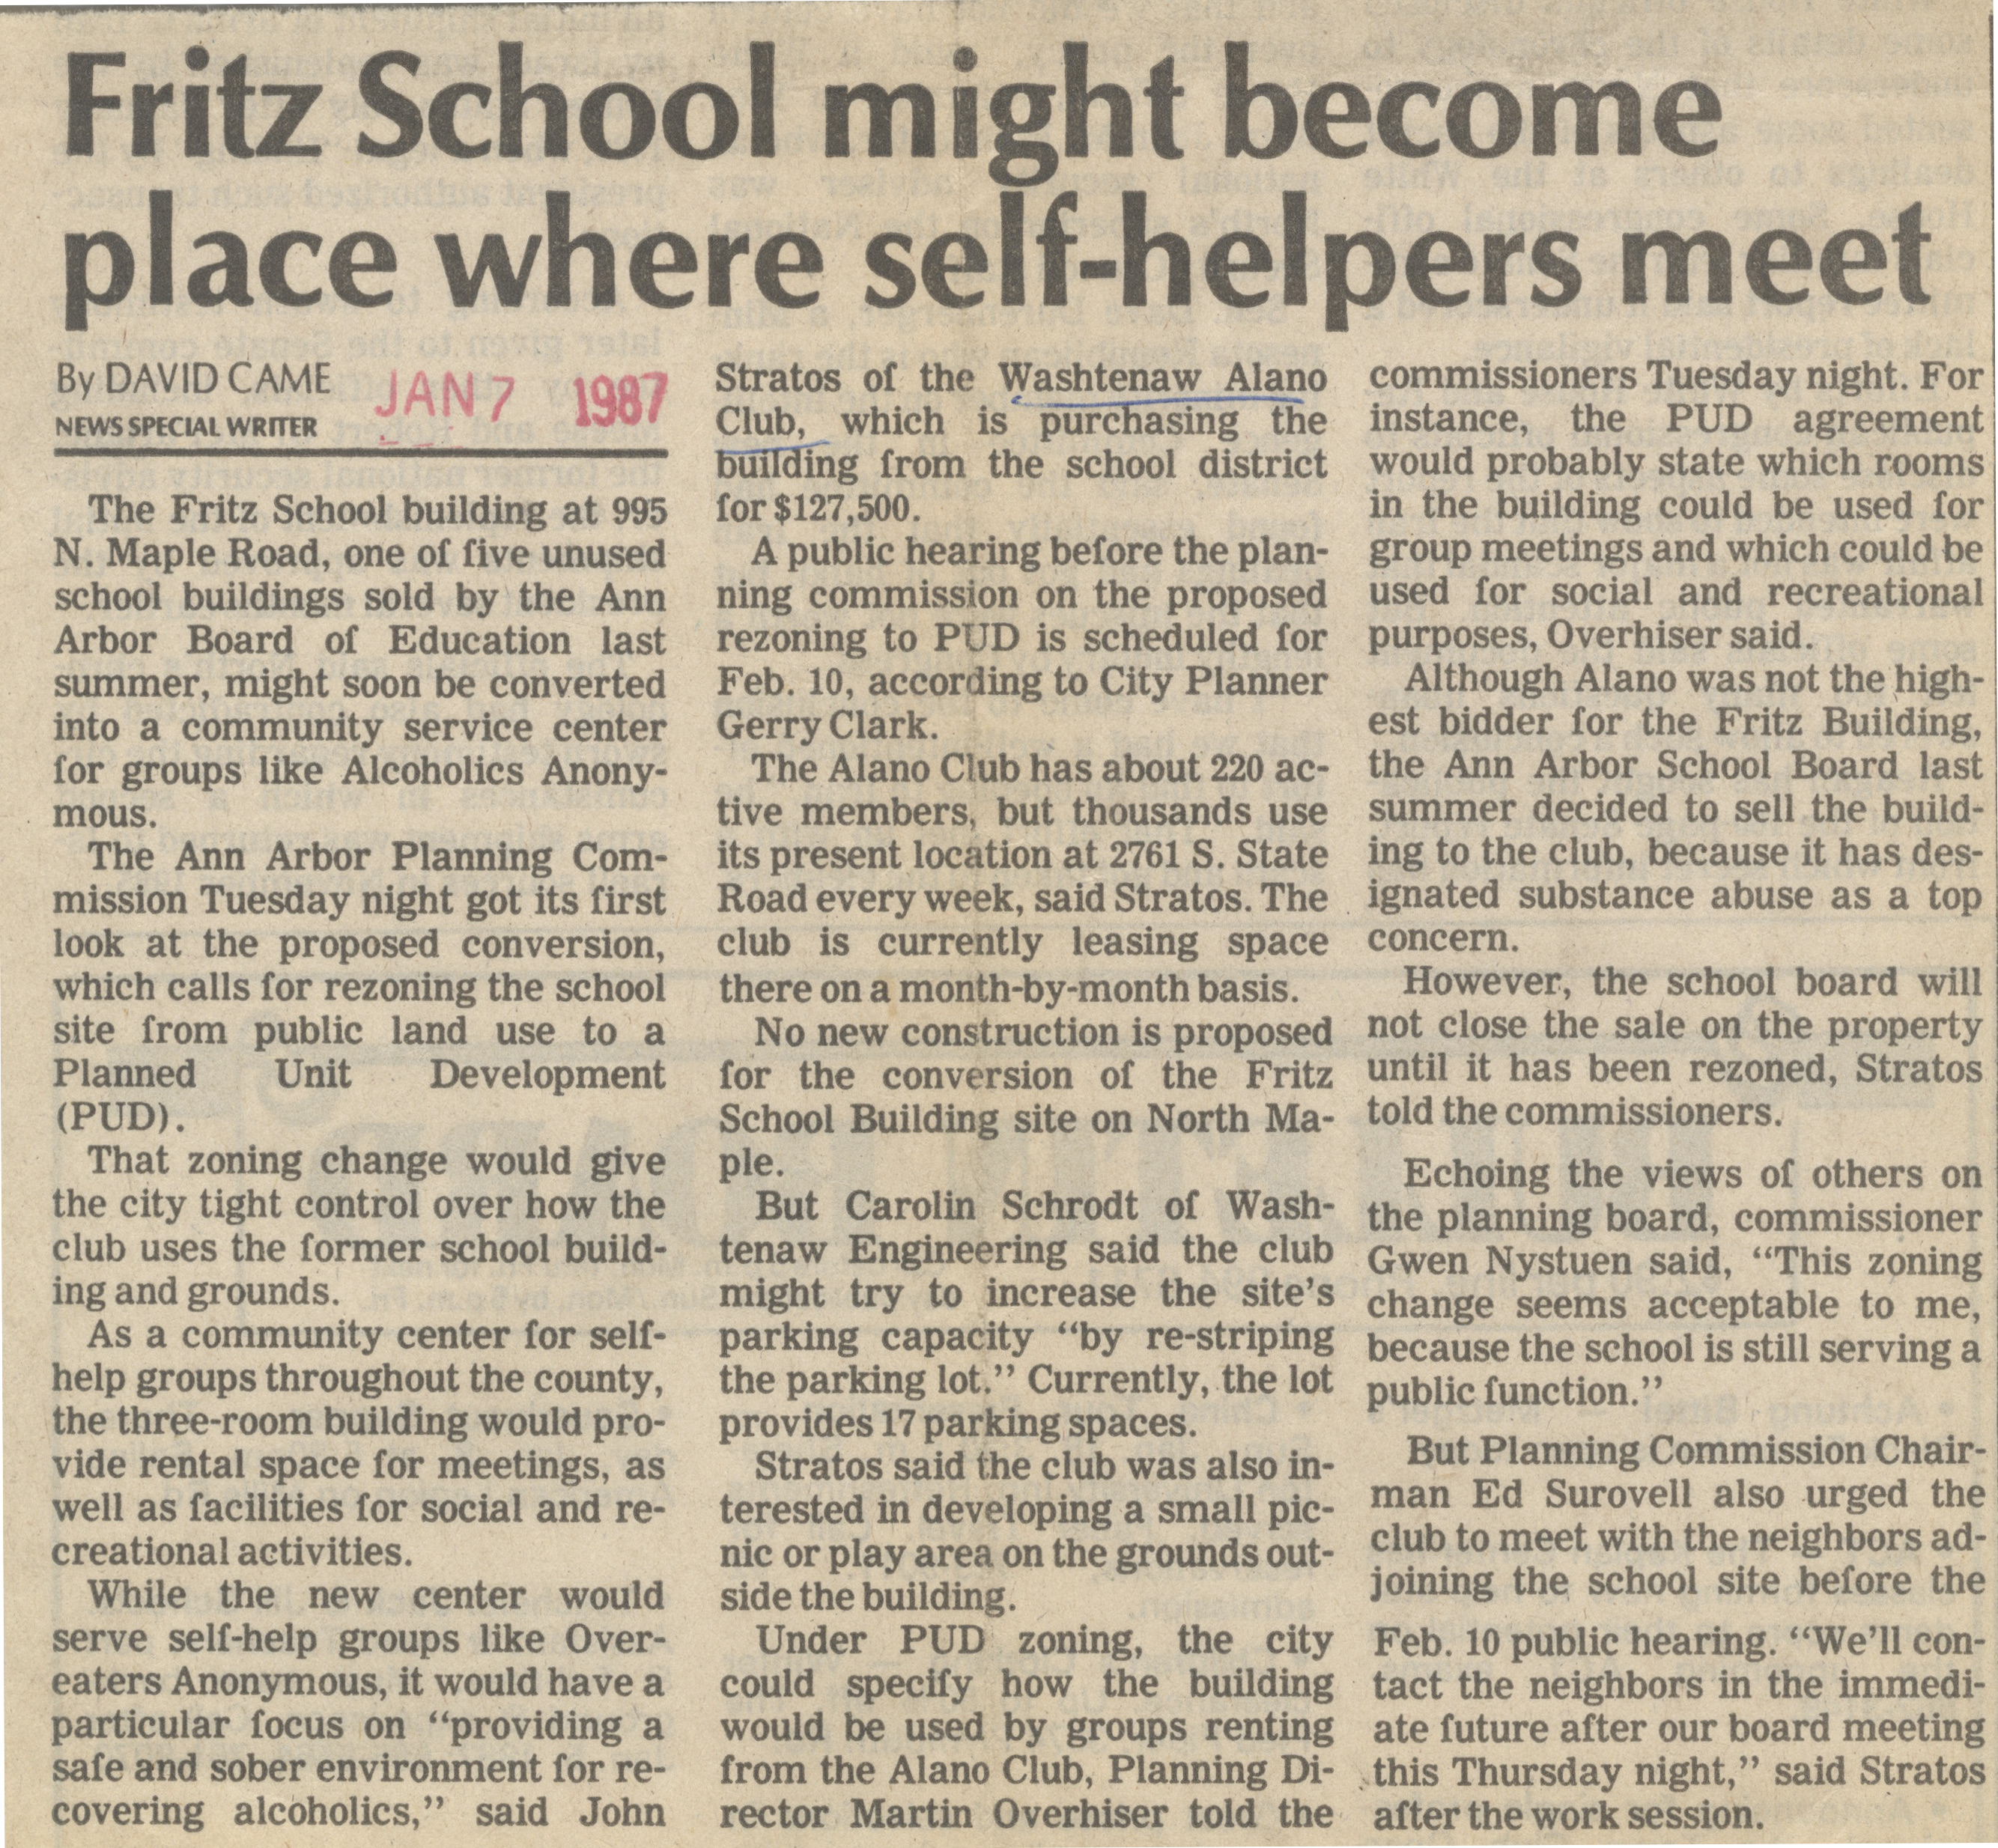 Fritz School Might Become Place Where Self-Helpers Meet image